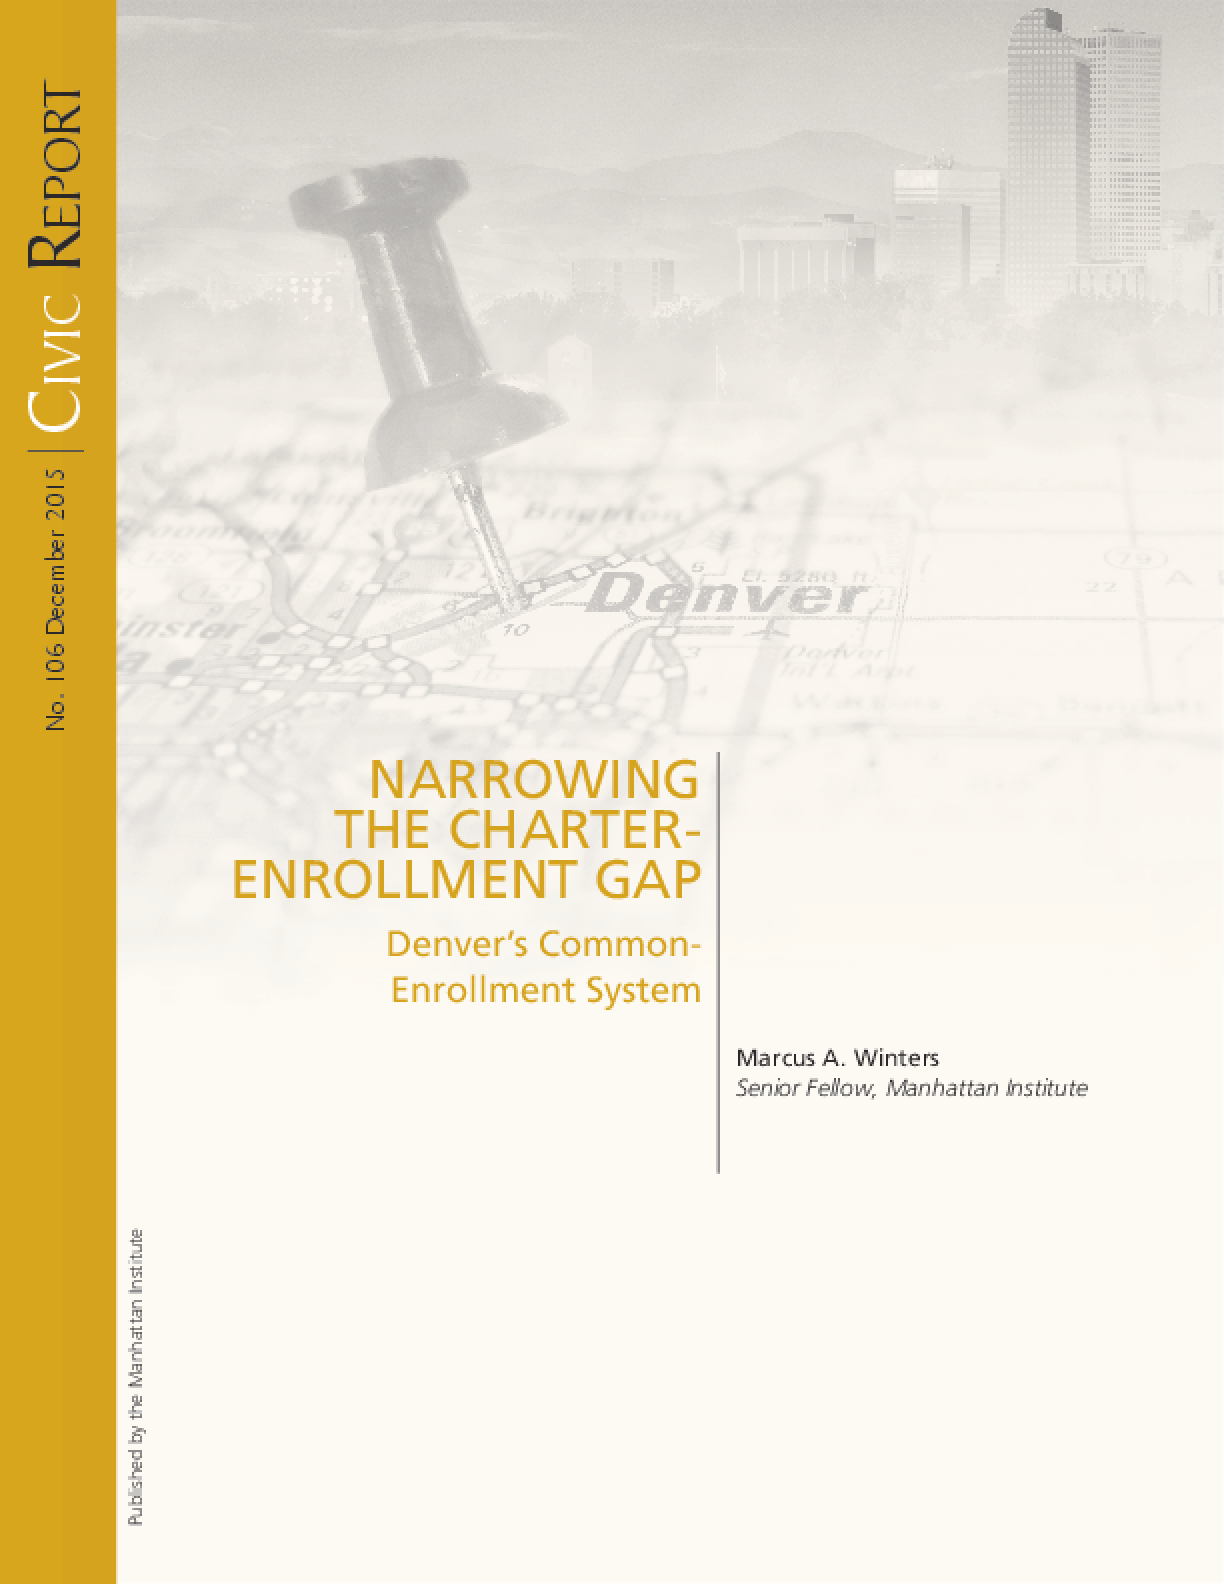 Narrowing The Charter Enrollment Gap: Denver's Common-Enrollment System